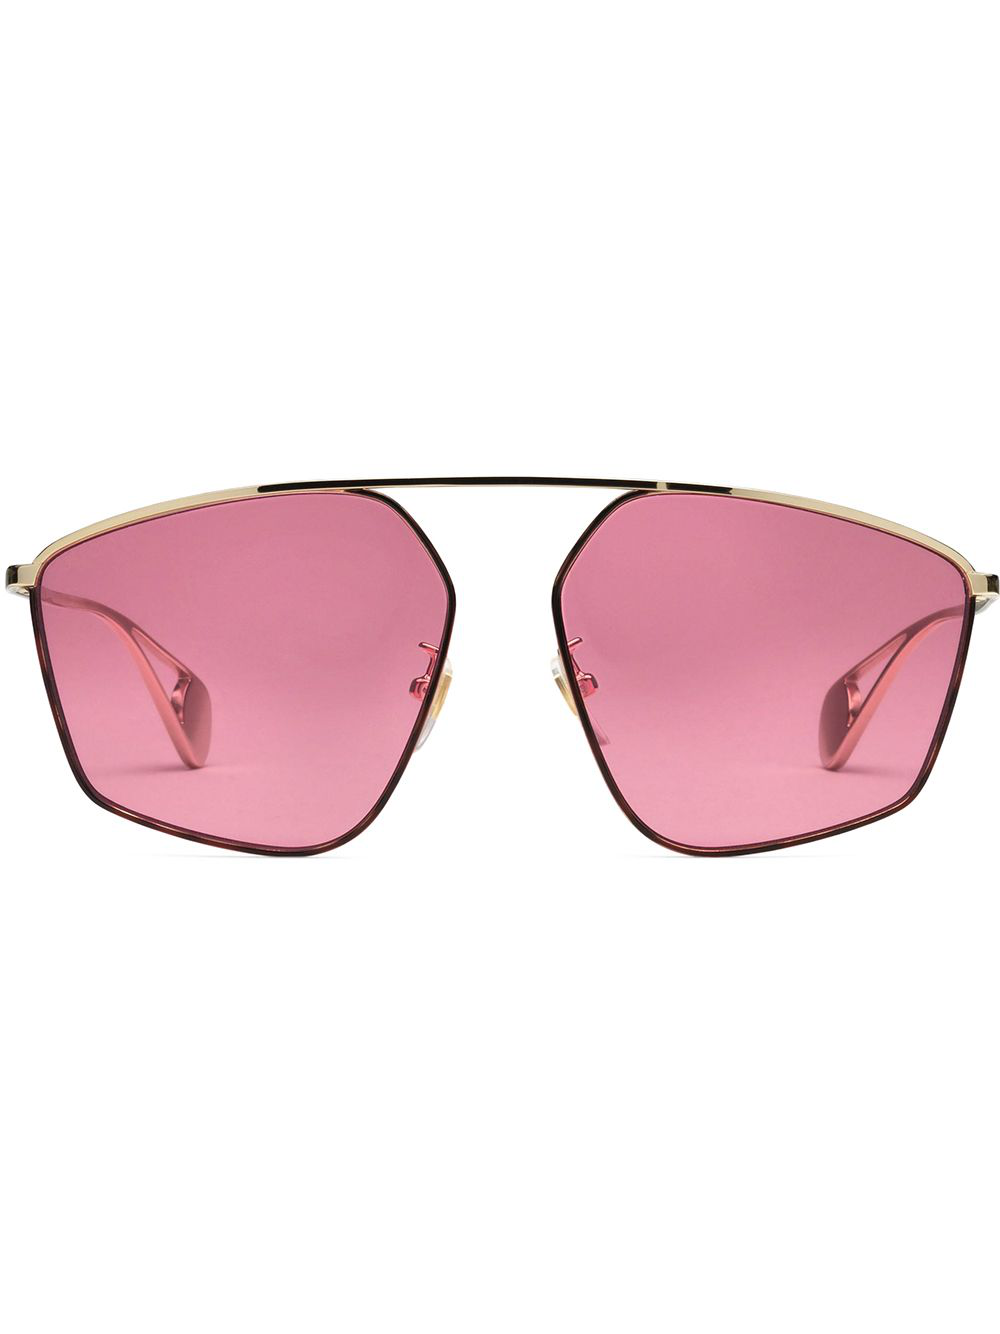 a9dcfbf4784 Gucci Eyewear Specialized Fit Square-Frame Sunglasses - Gold